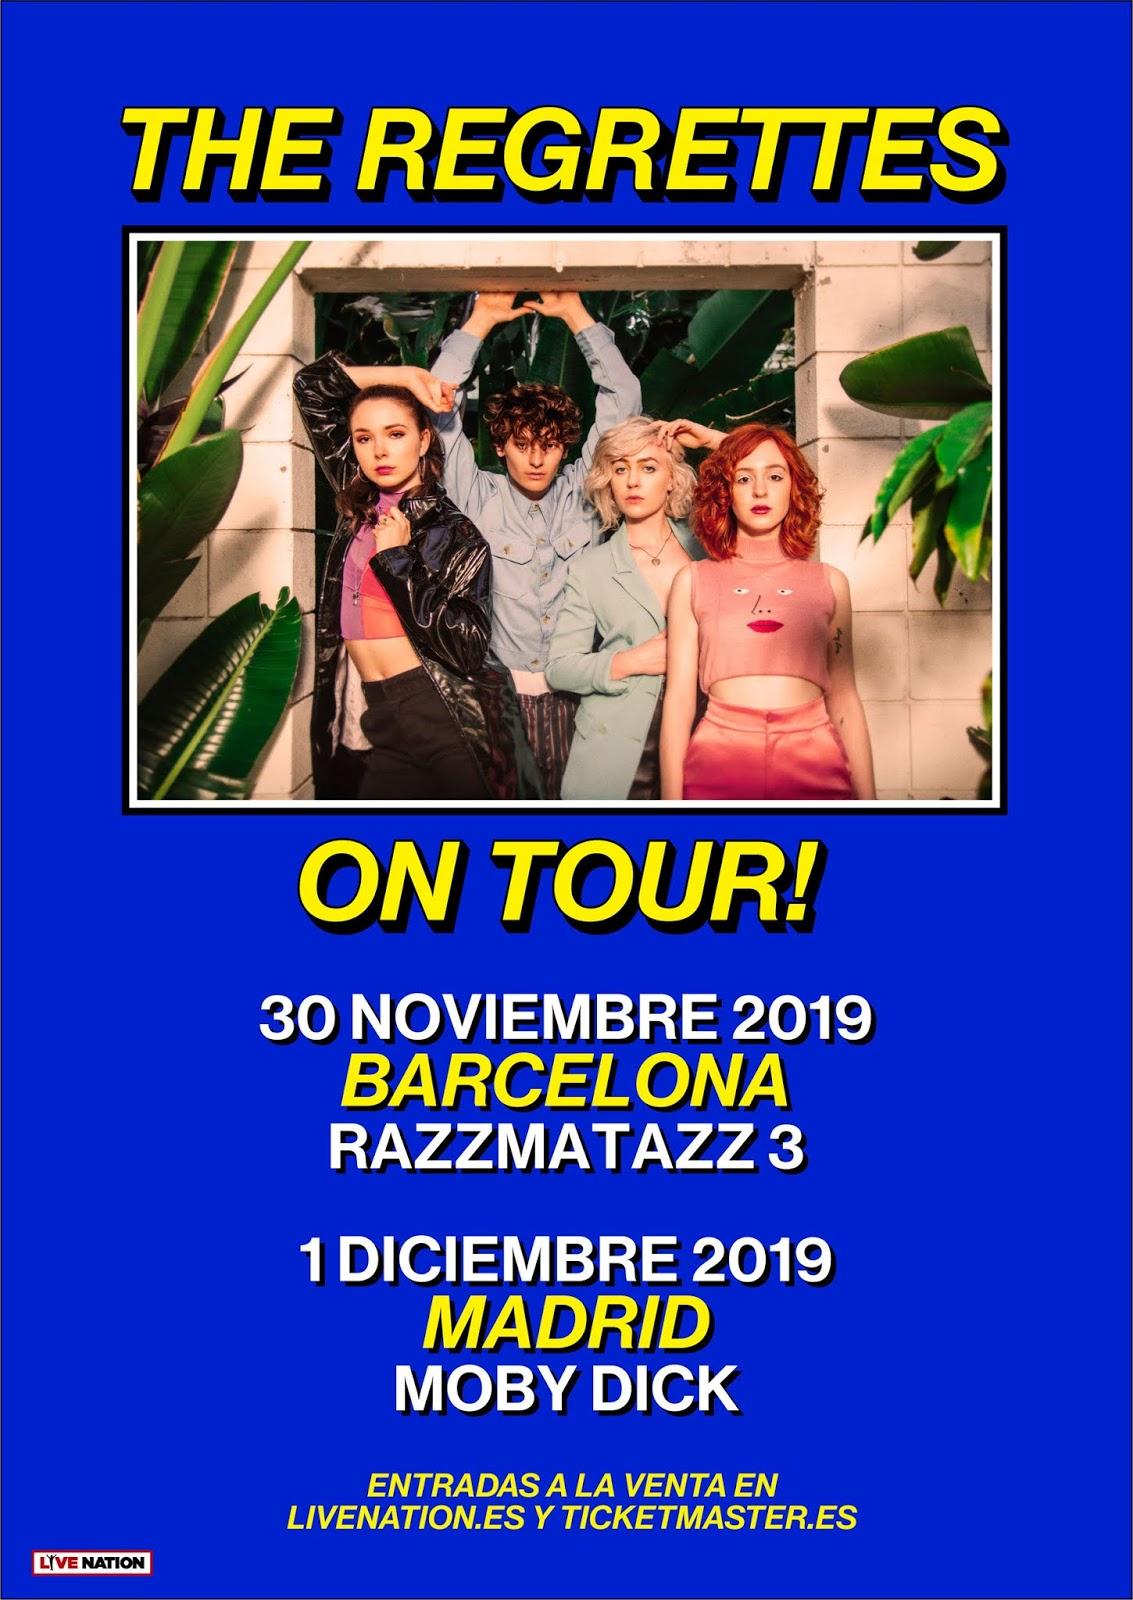 The Regrettes On Tour